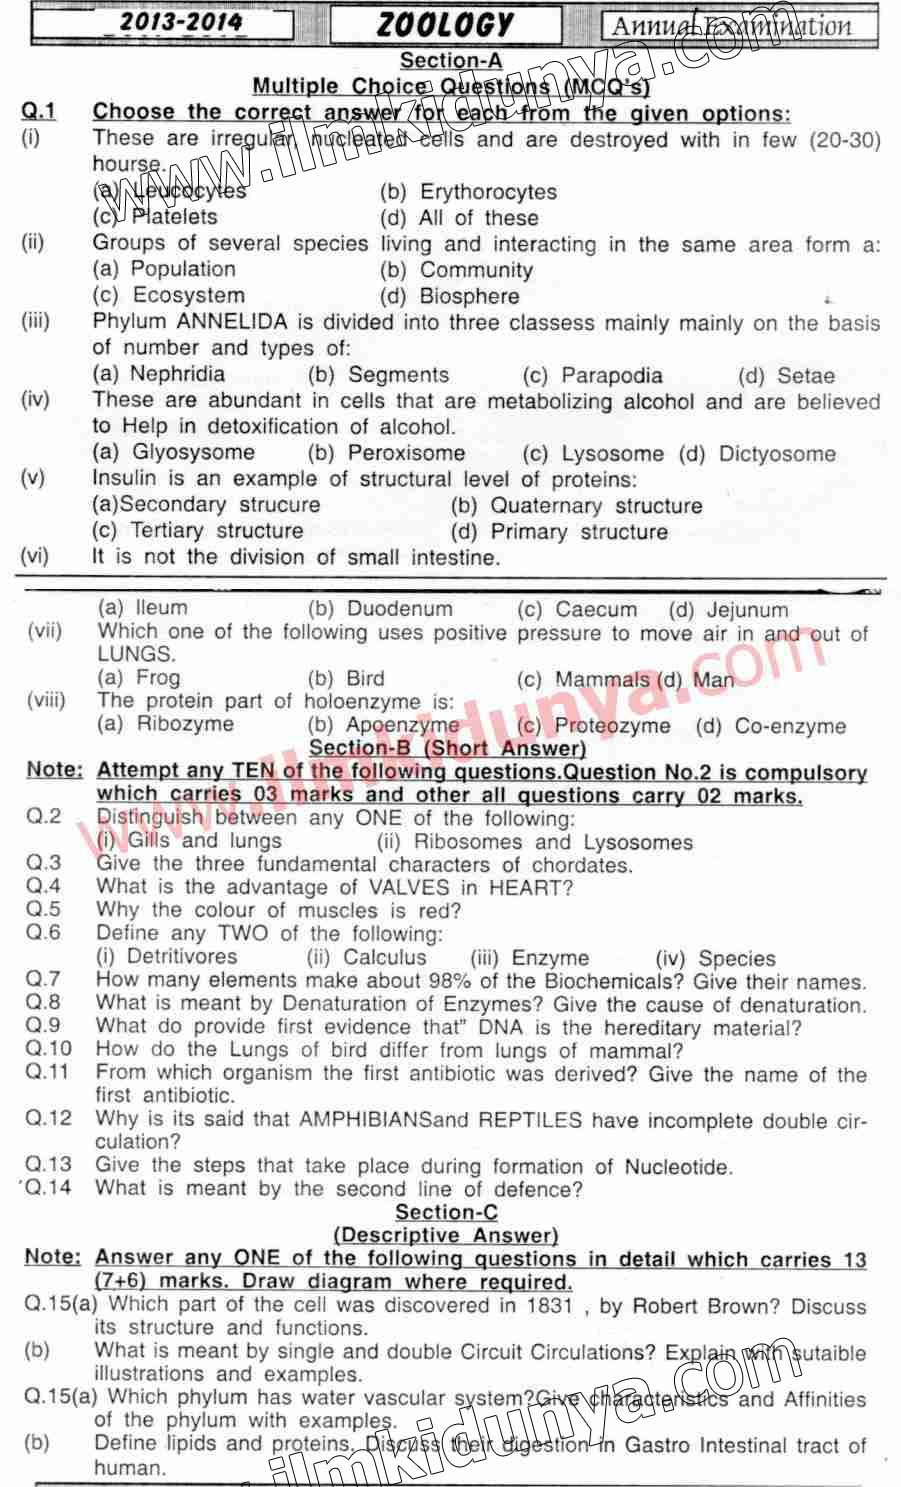 Past Papers 2014 Hyderabad Board Inter Part 1 Zoology